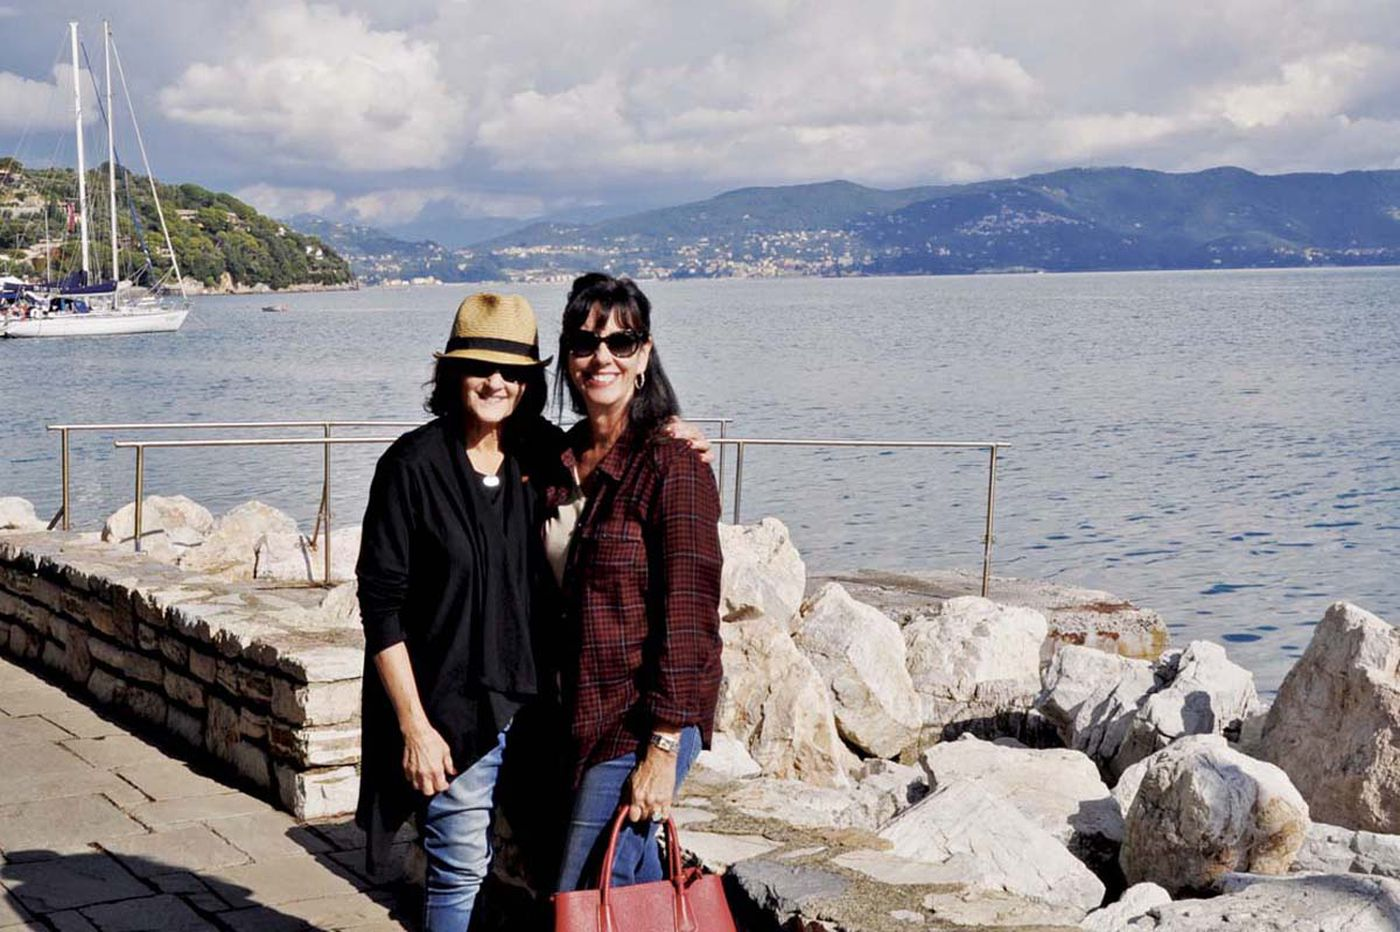 Best friends delight in Italy - cooking, eating, shopping together